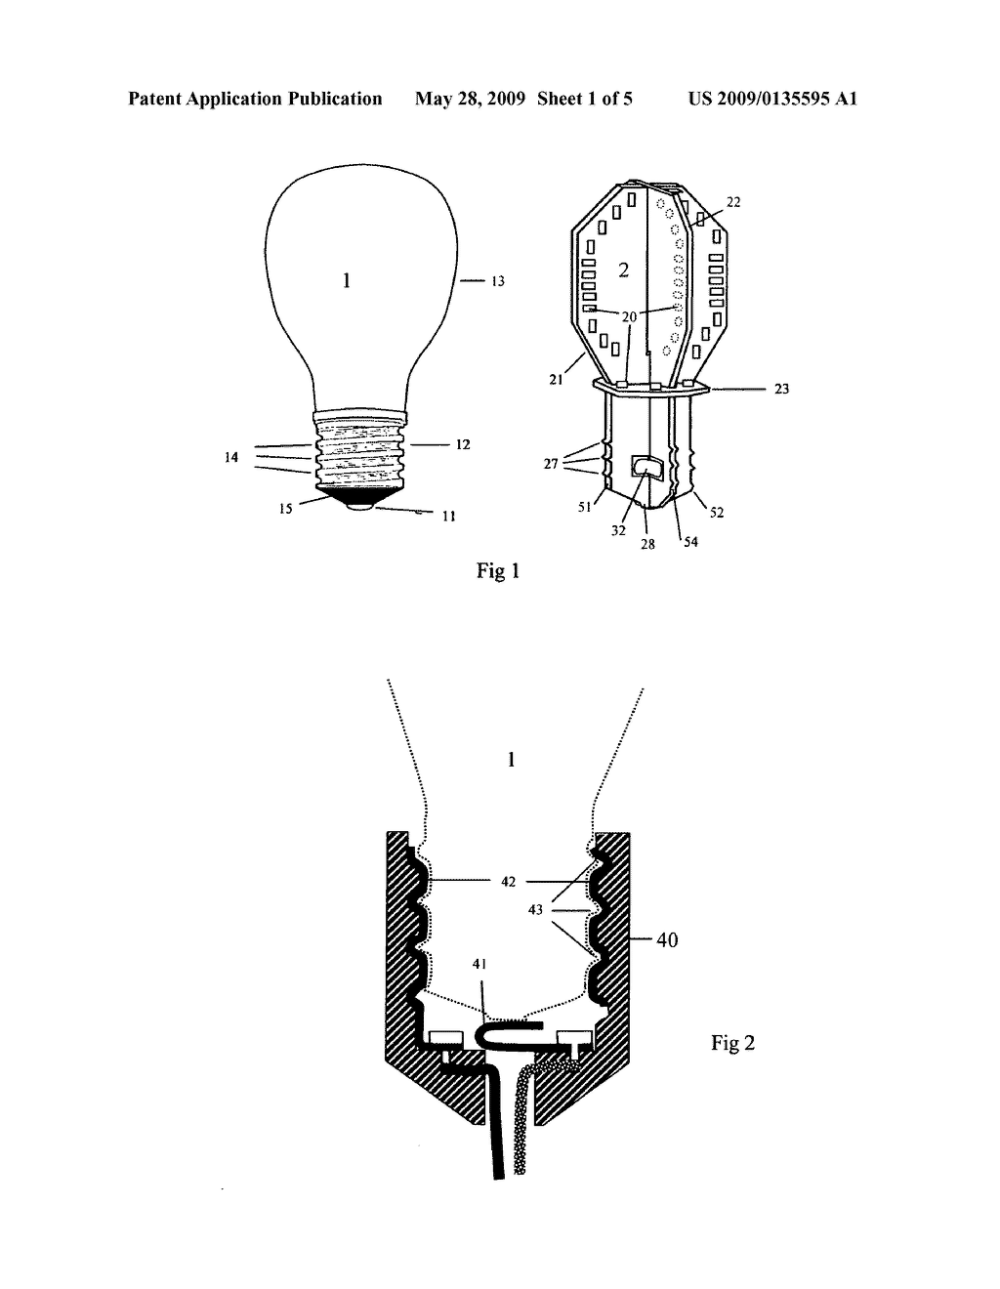 medium resolution of light bulb with light emitting elements for use in conventional incandescent light bulb sockets diagram schematic and image 02